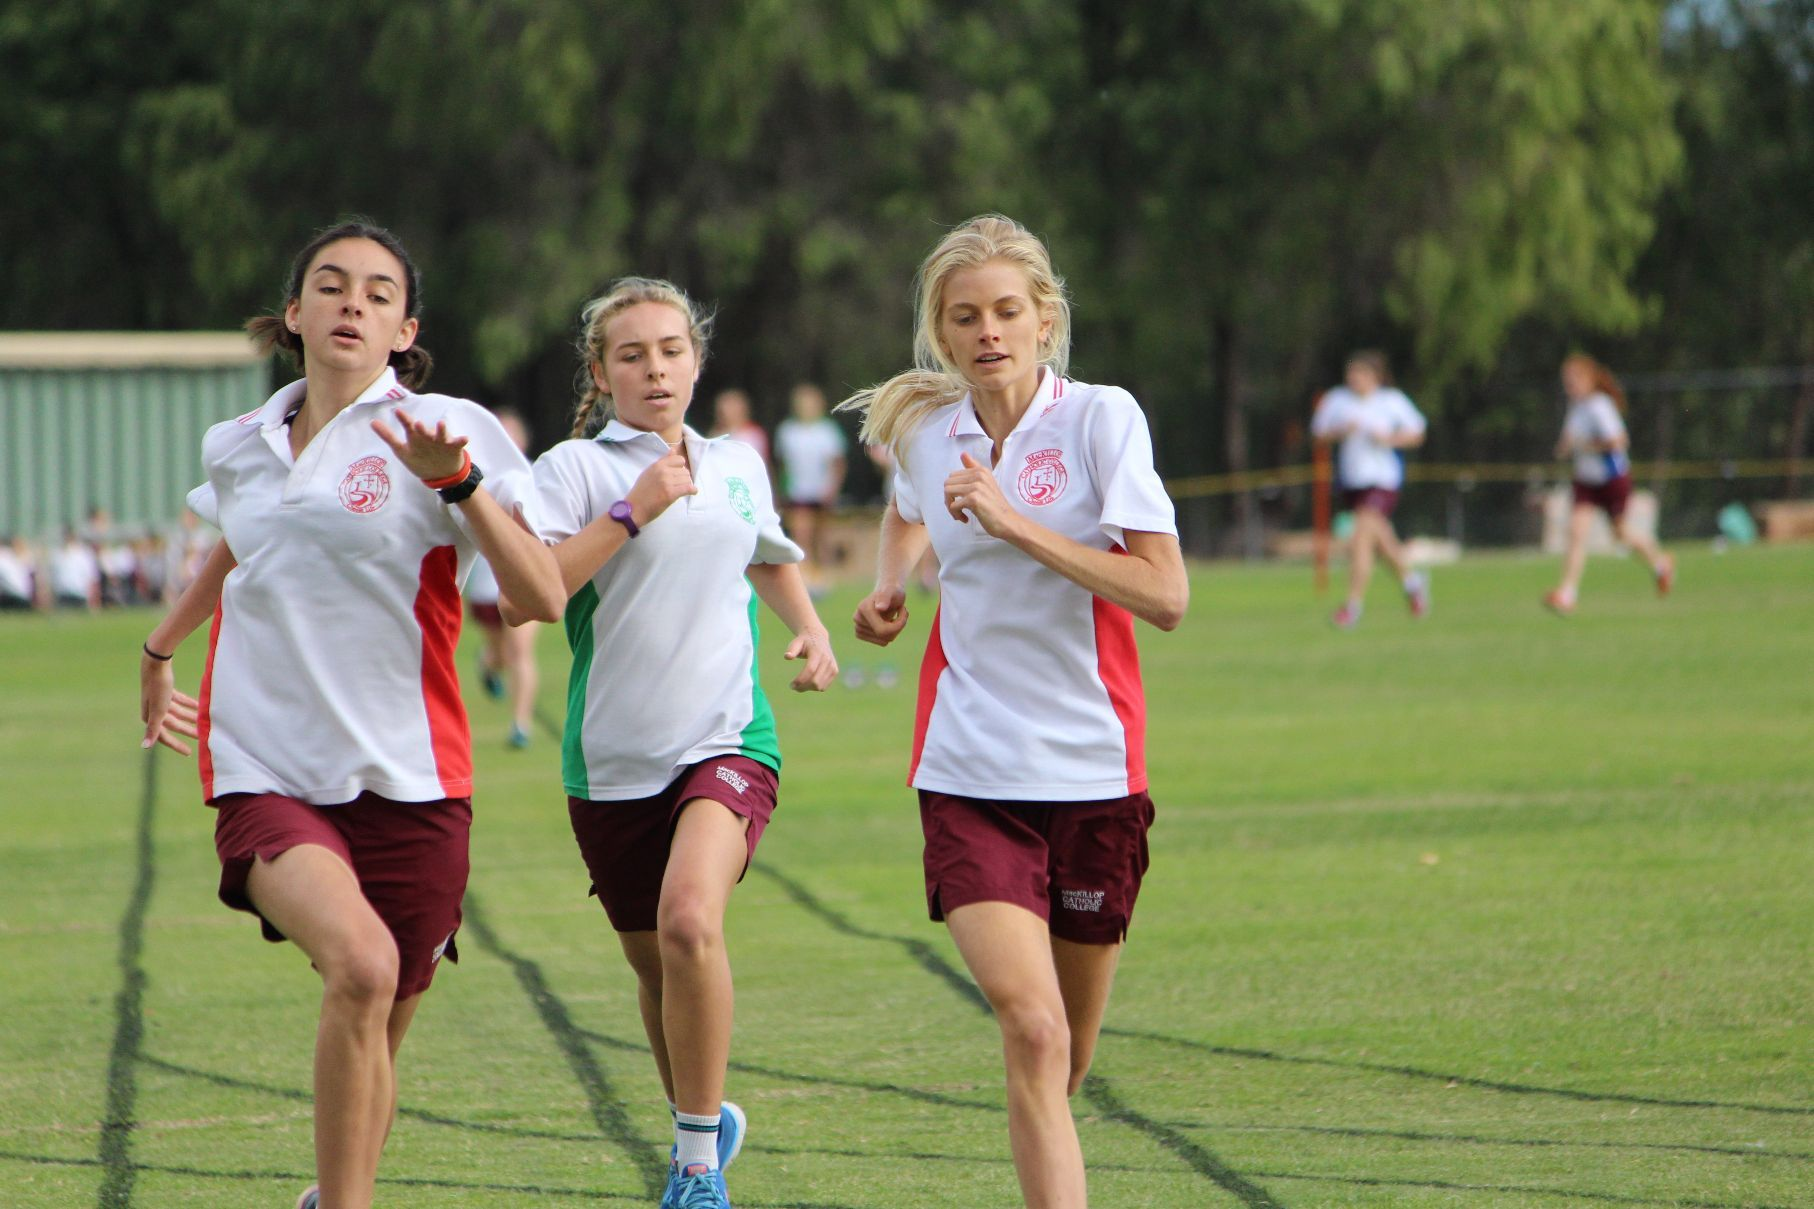 secondary-athletics-carnival-002